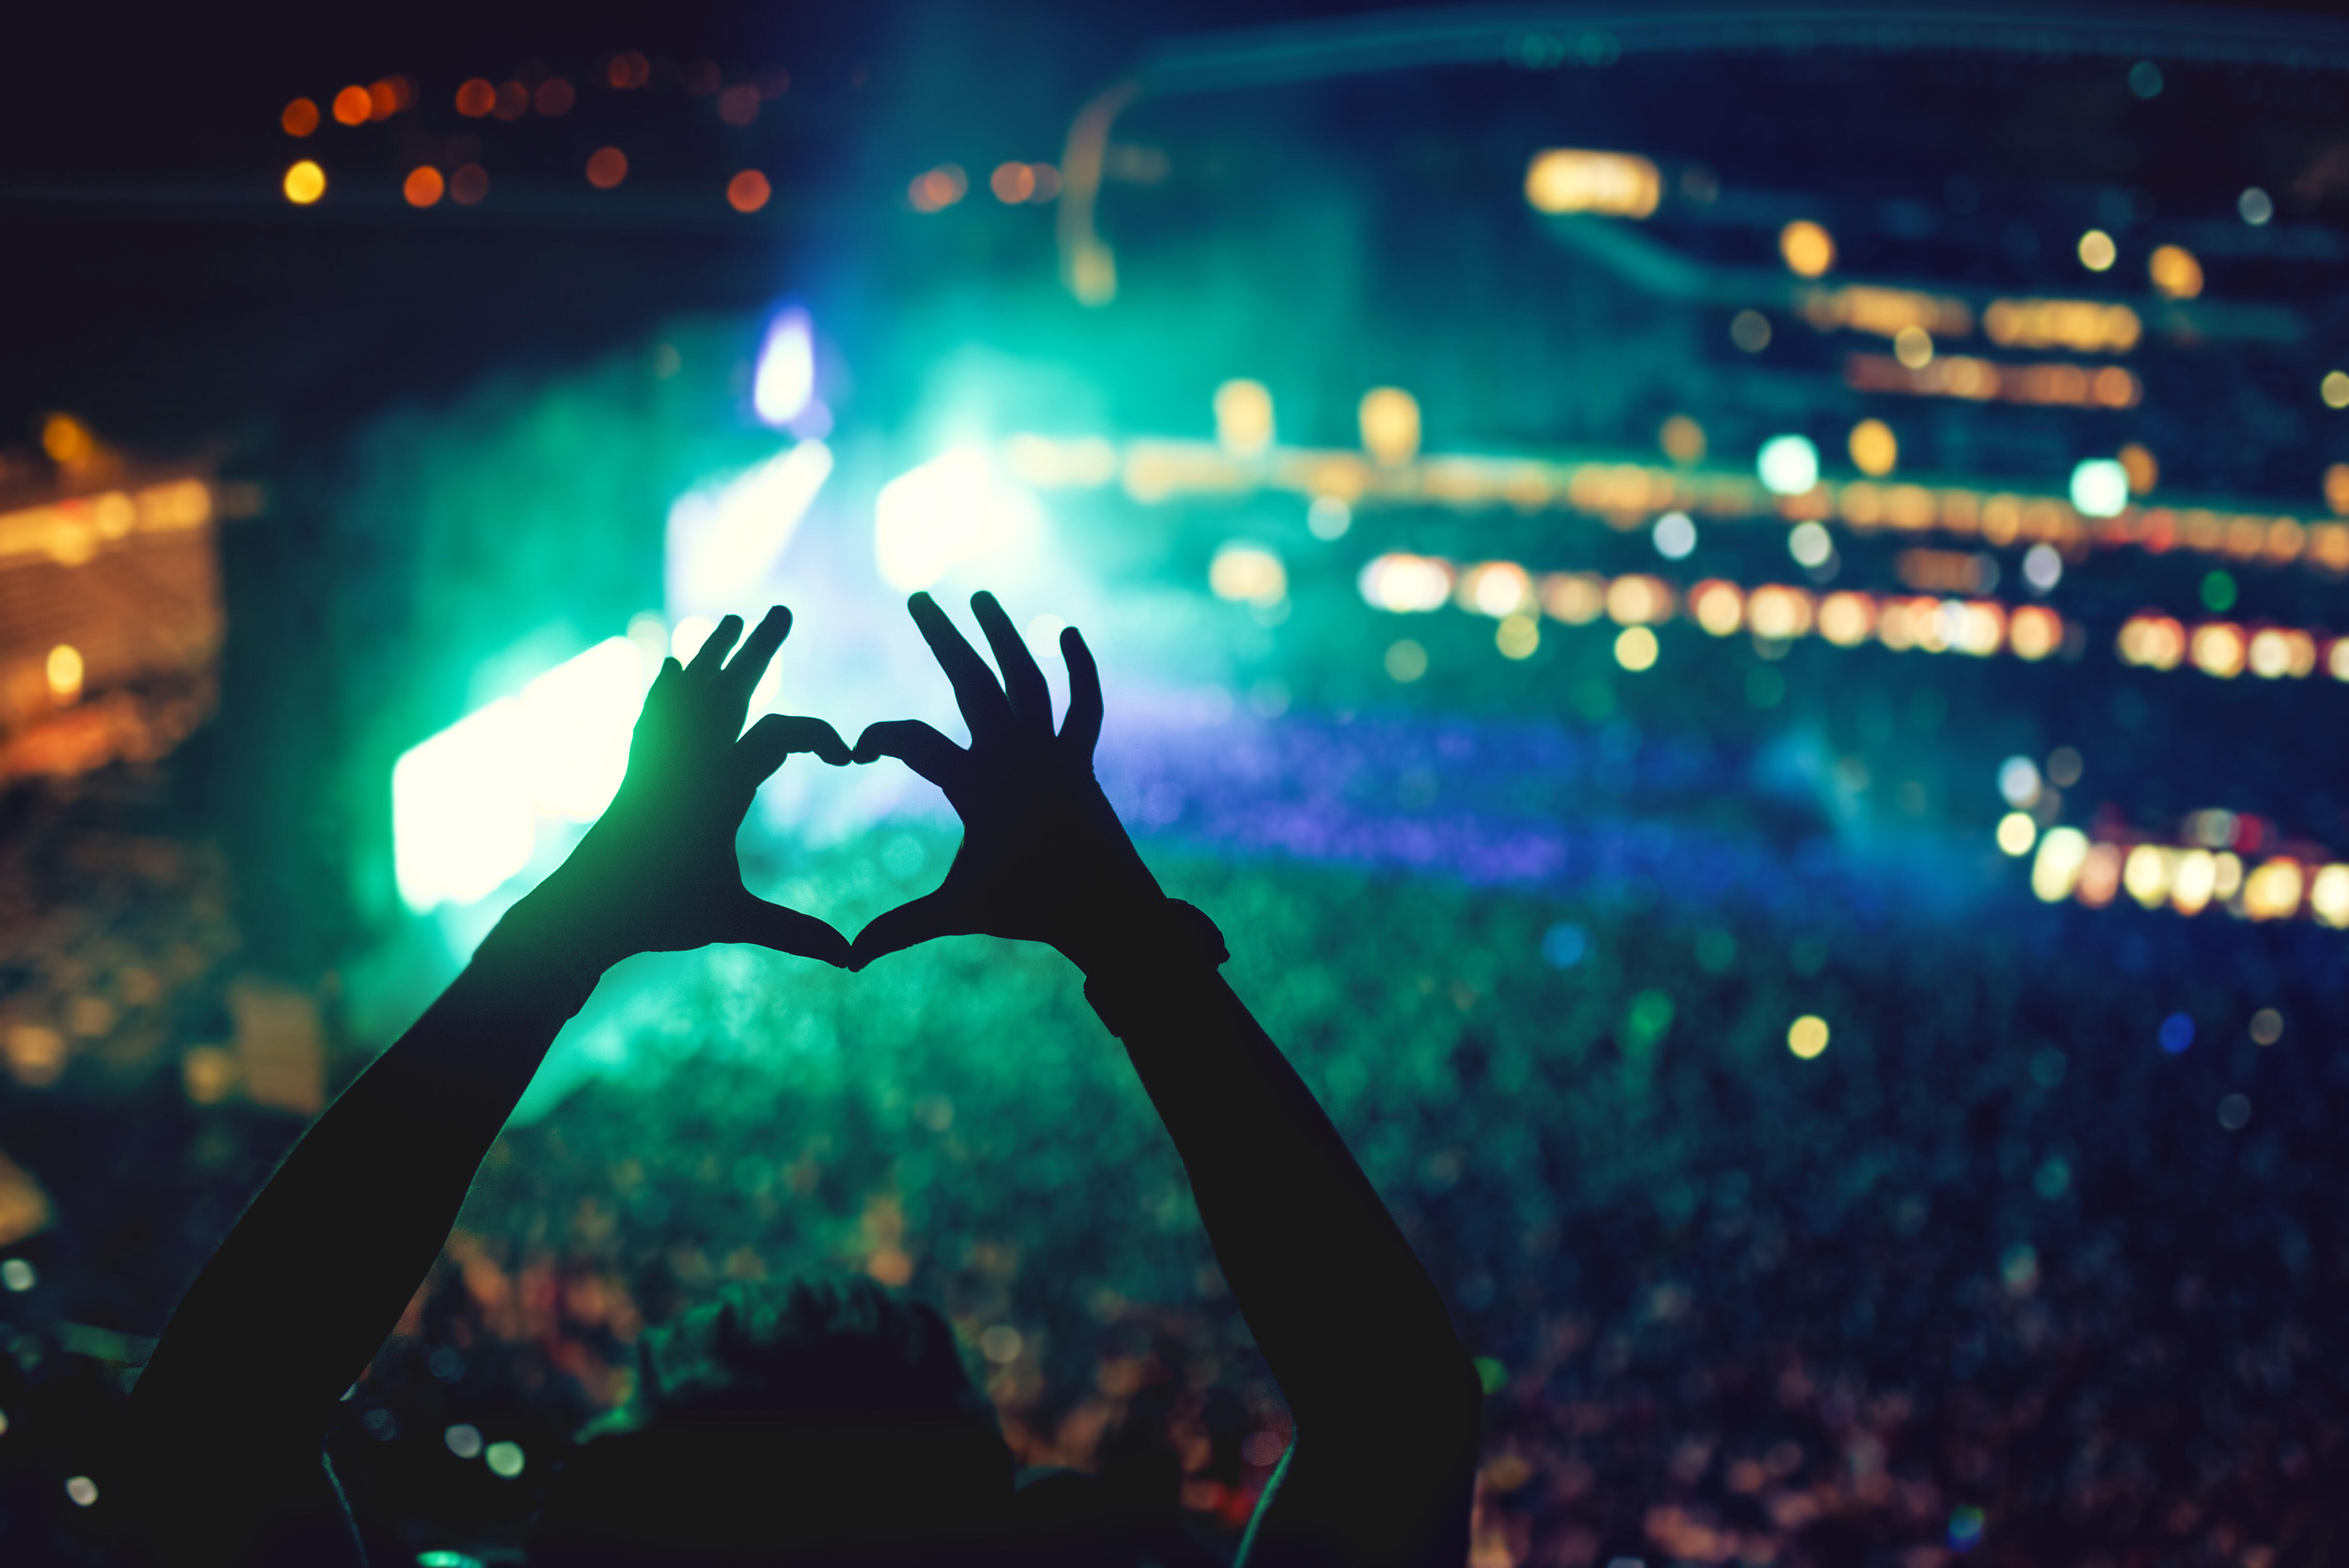 Hands held up in heart shape as silhouette in front of blur of lights in stadium concert